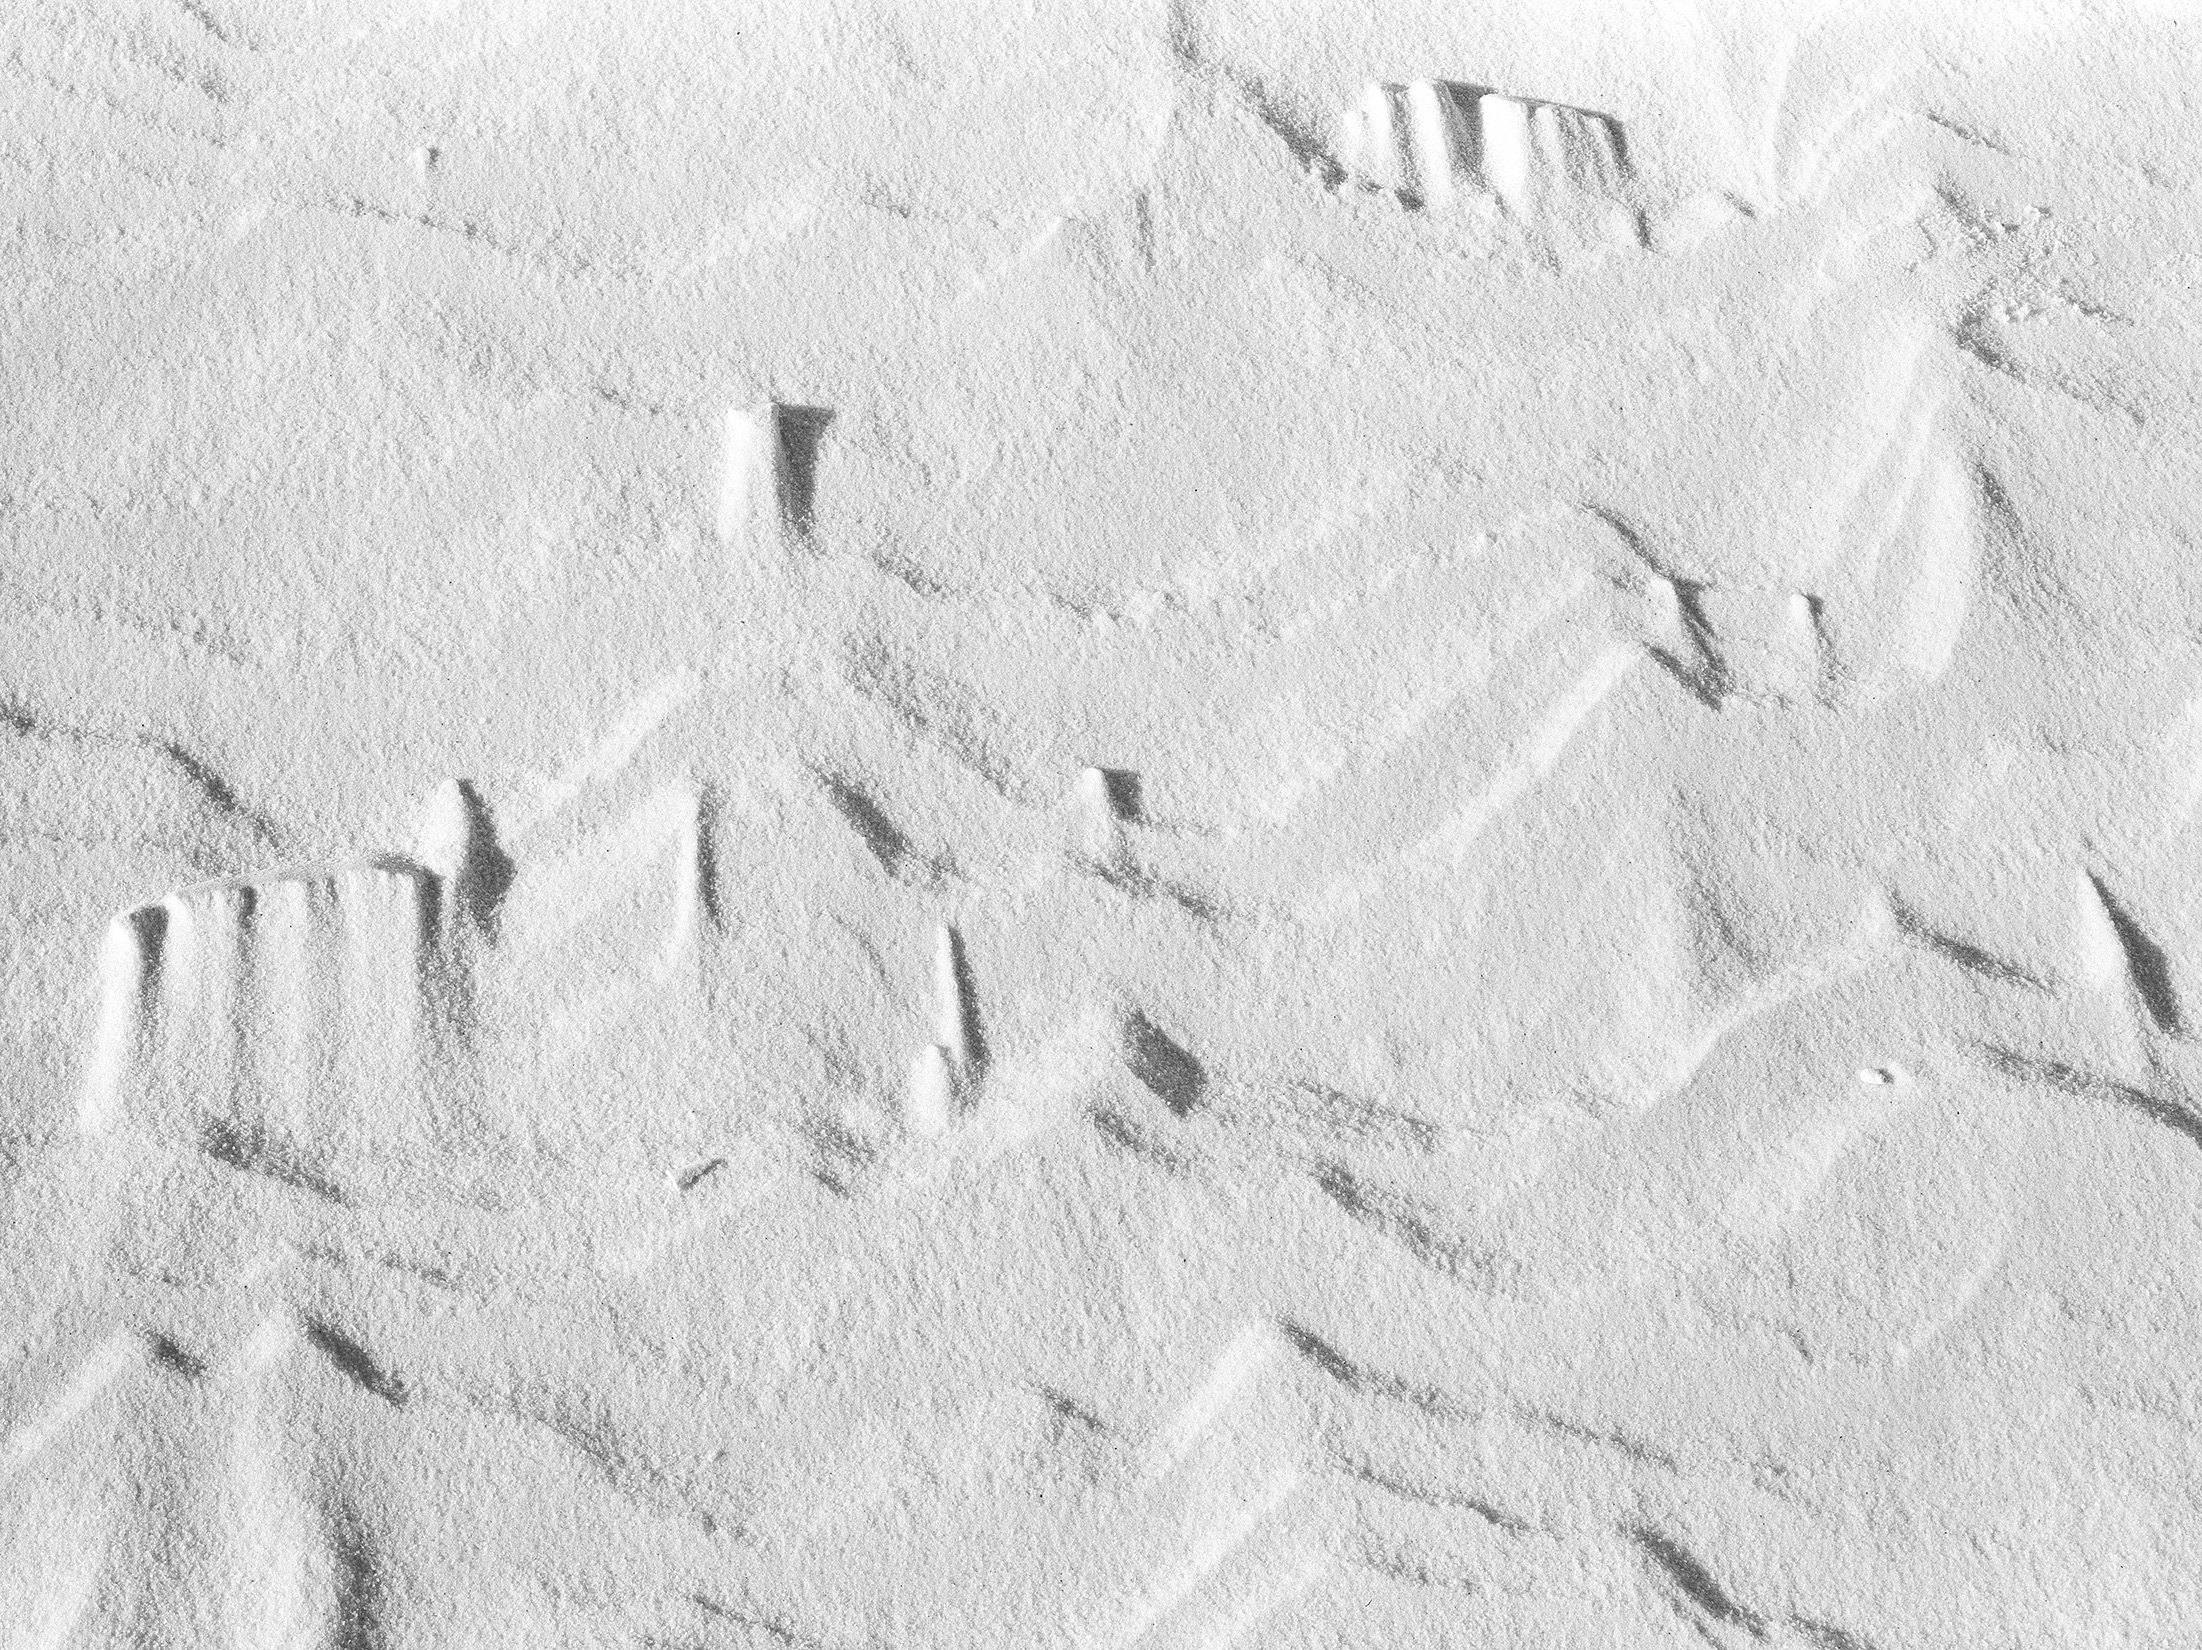 Sand Patterns, Whitesands